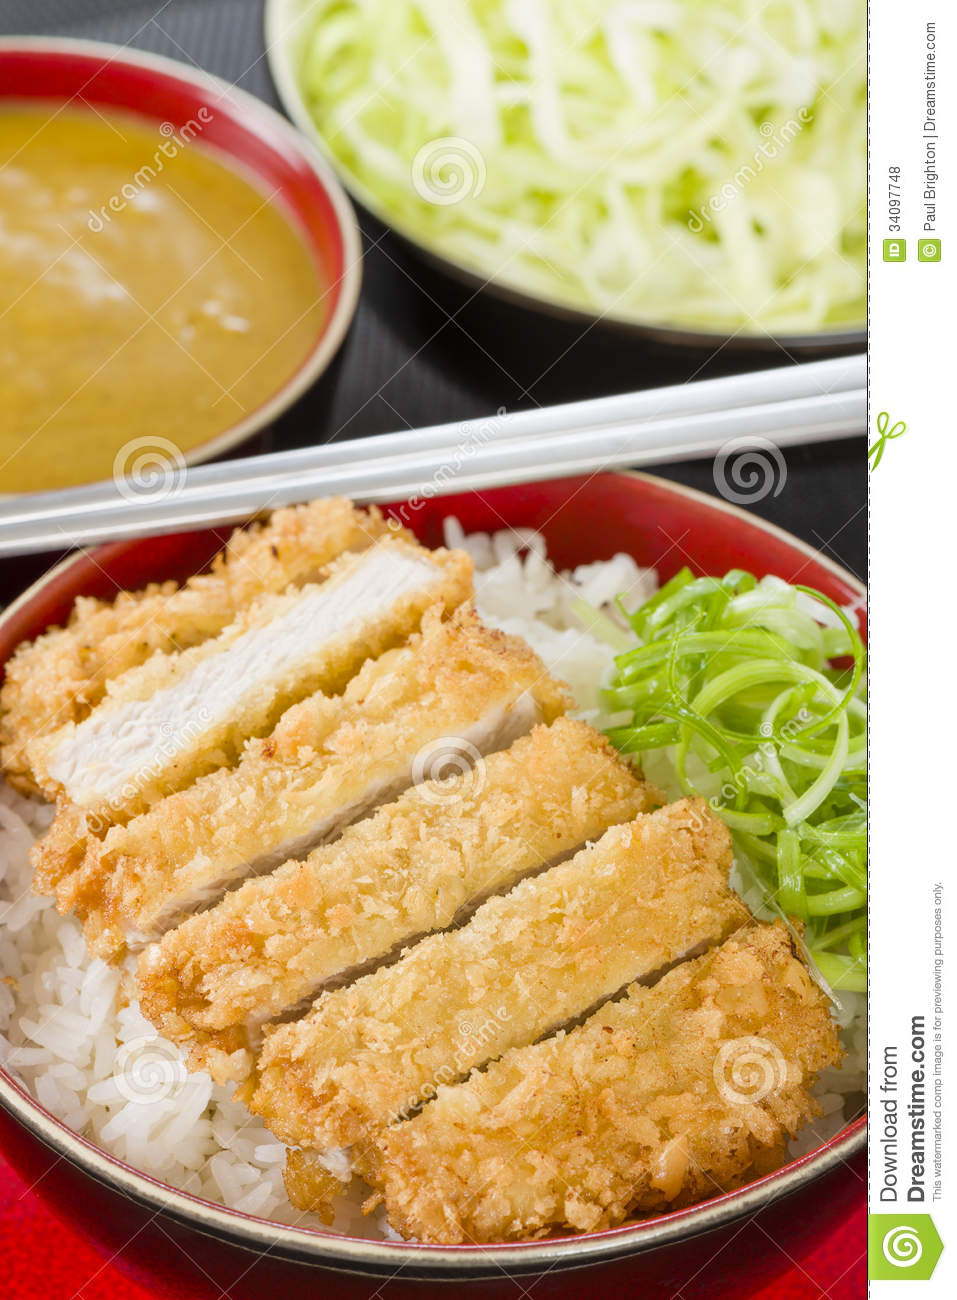 Tonkatsu - Japanese breaded, deep-fried pork cutlet on top of boiled ...